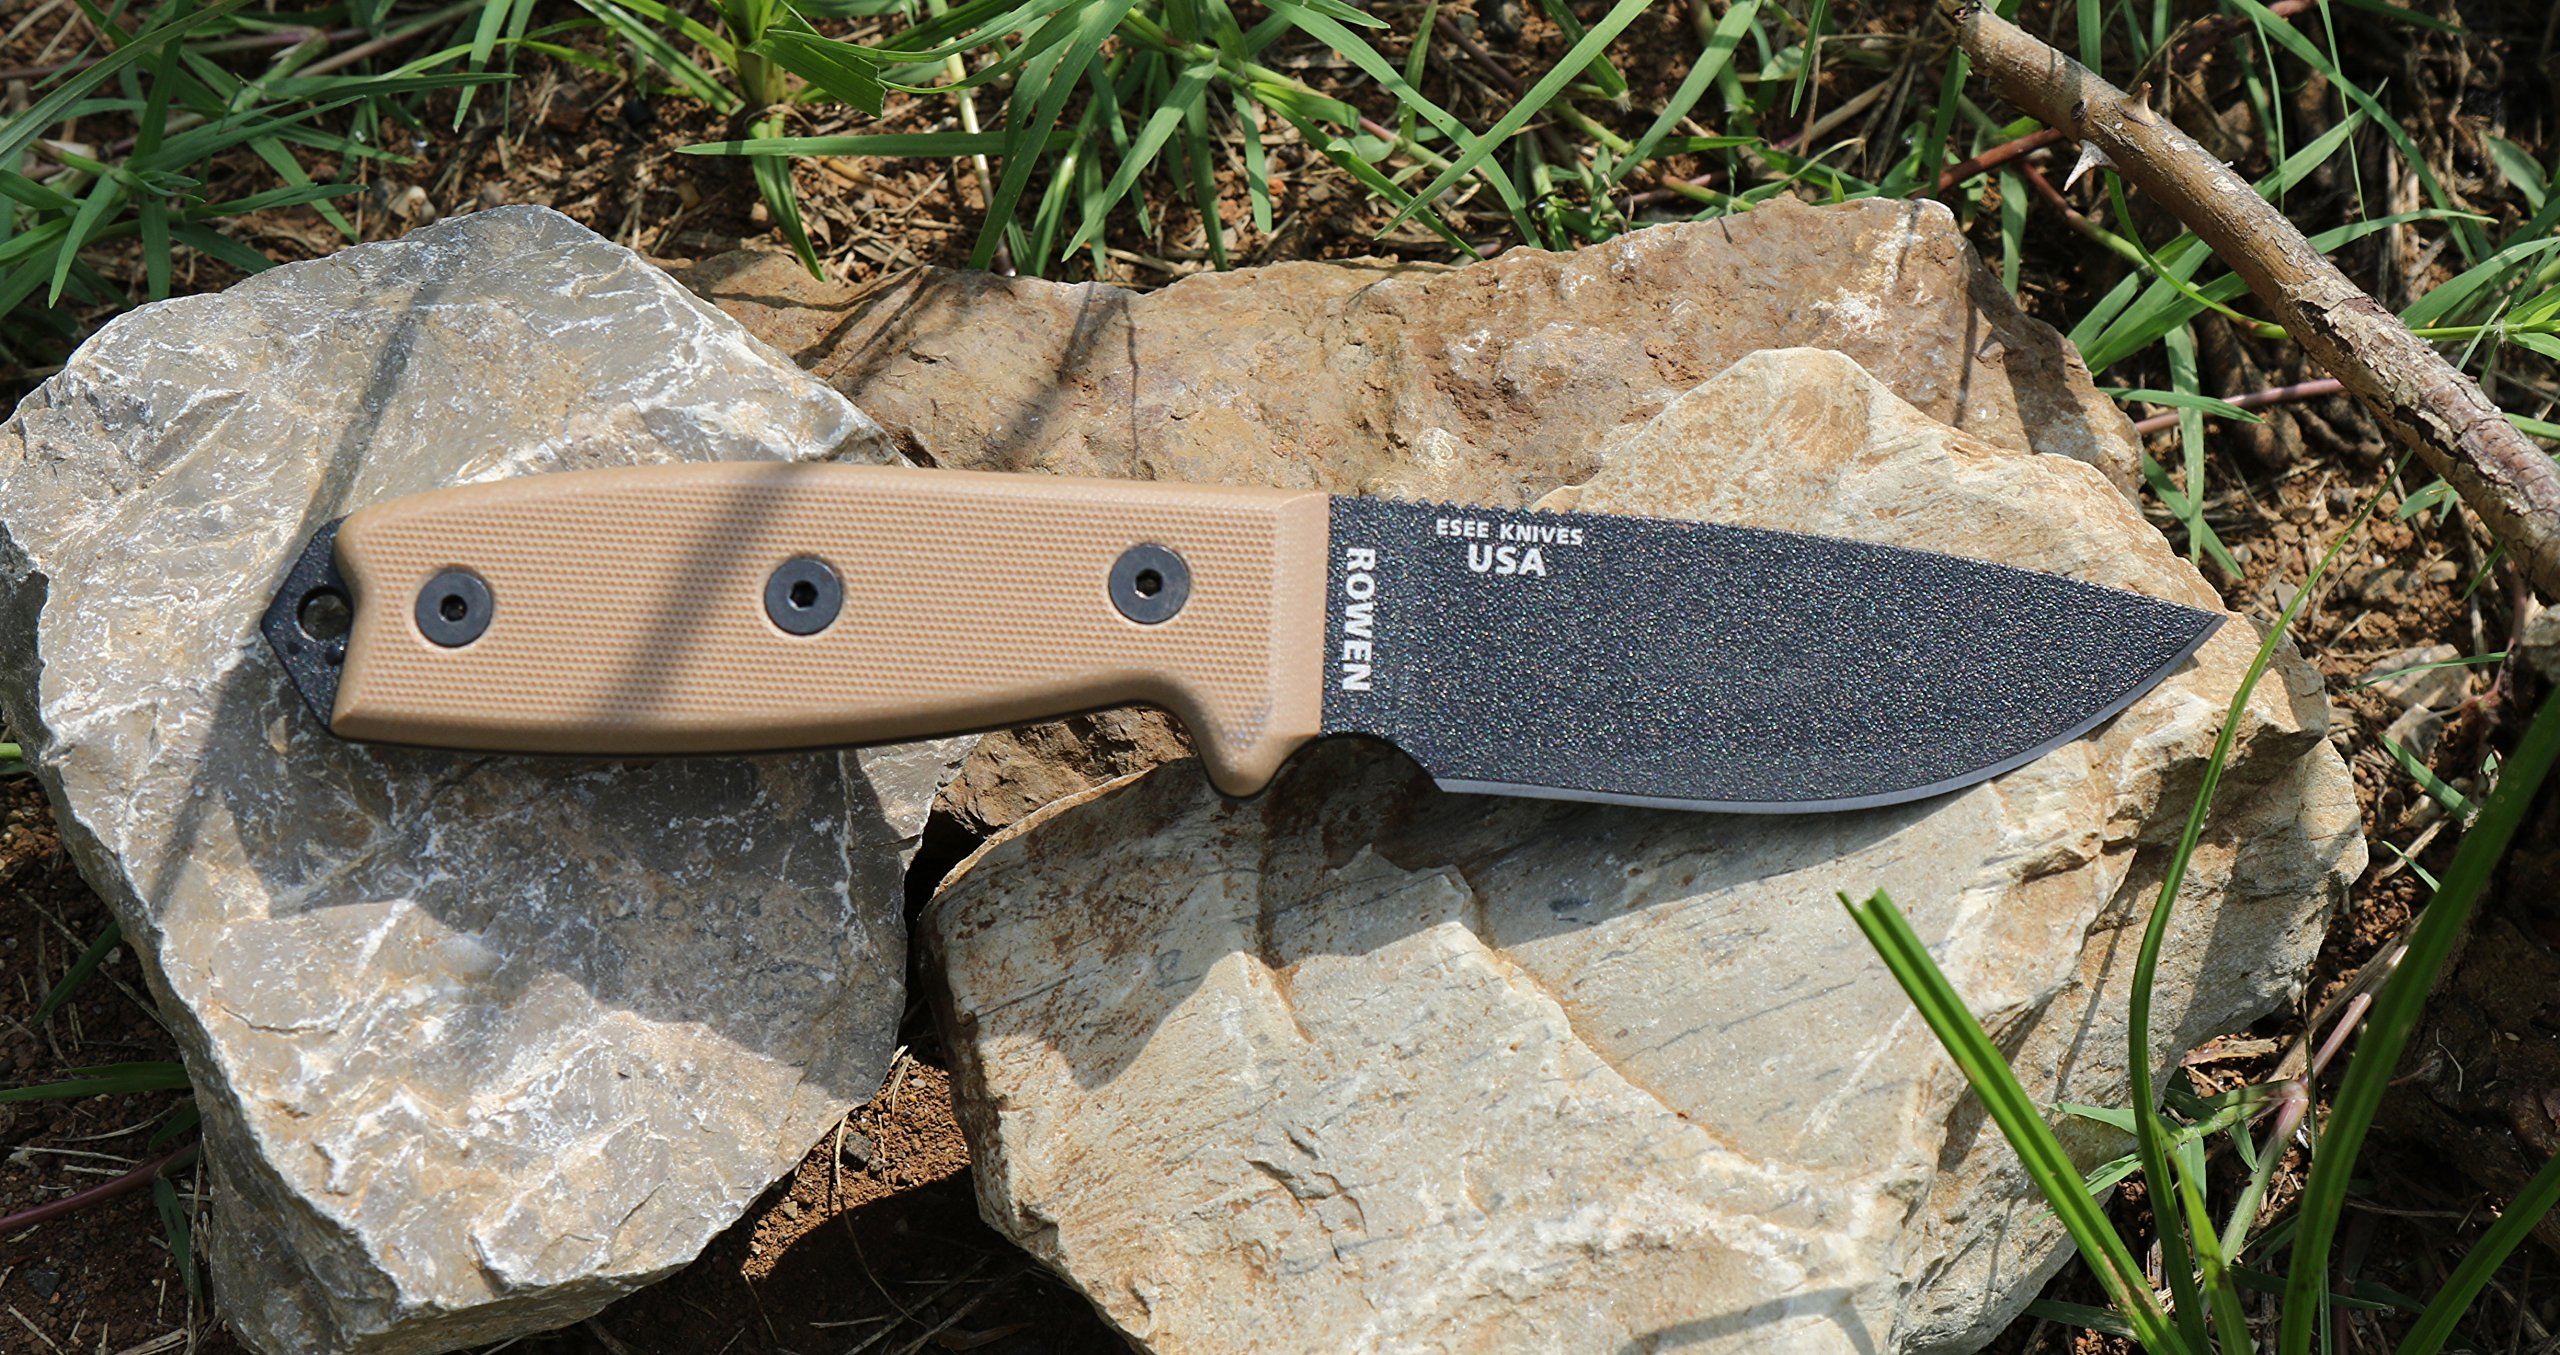 ESEE Knives 3P Fixed Blade Knife with Molded Polymer Sheath by ESEE (Image #2)